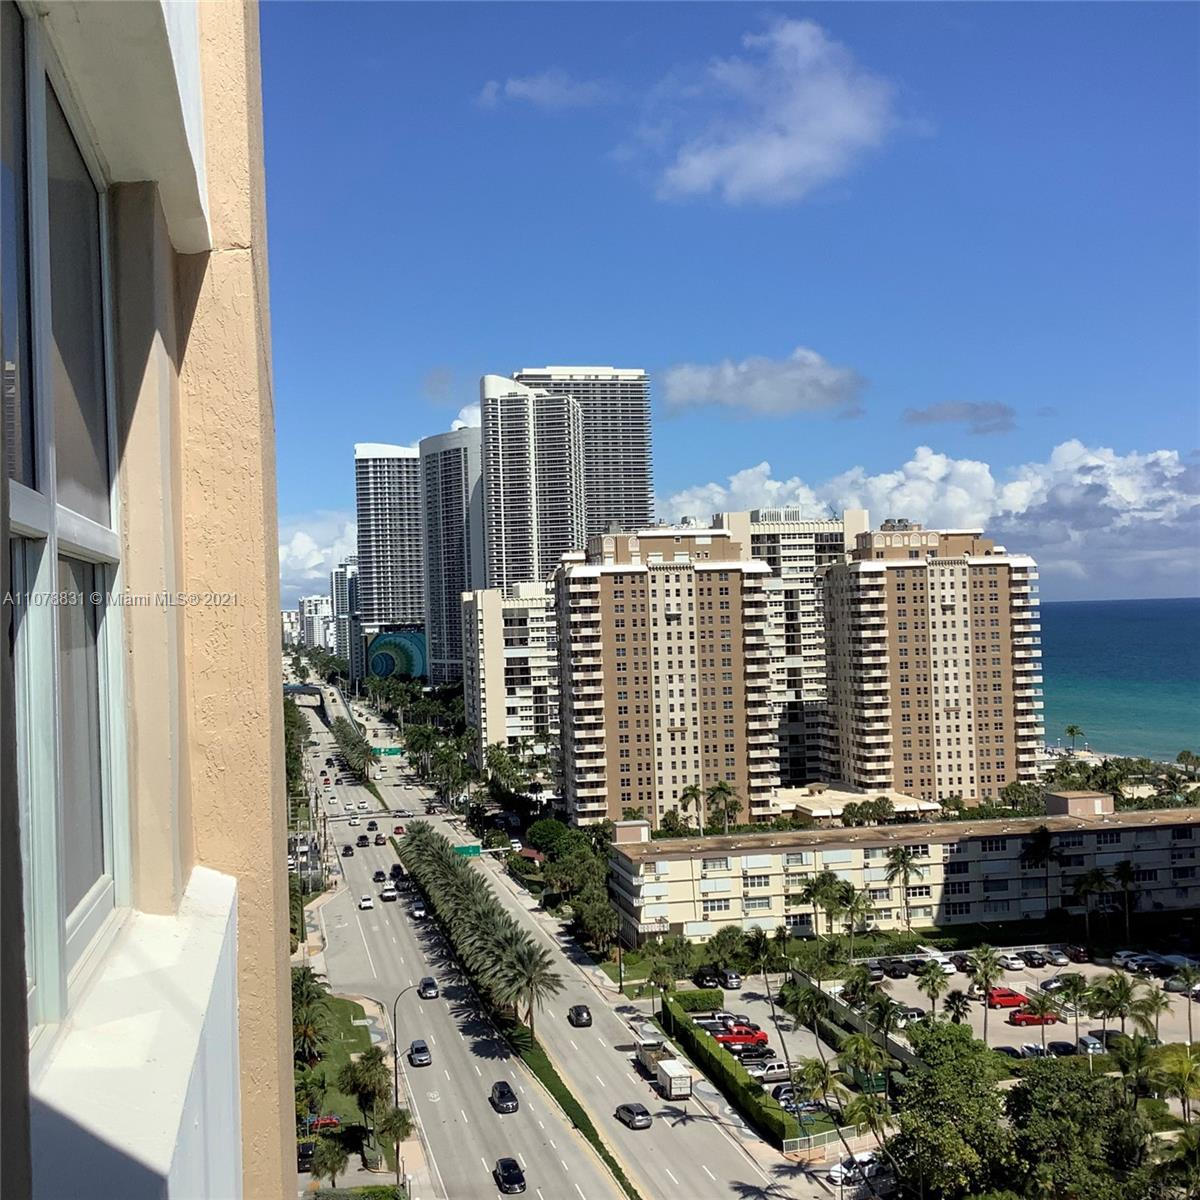 Corner 3 br 2.5 Bath, High Floor, Hurricane Windows/Doors. Unit to be sold unfurnished if requested.